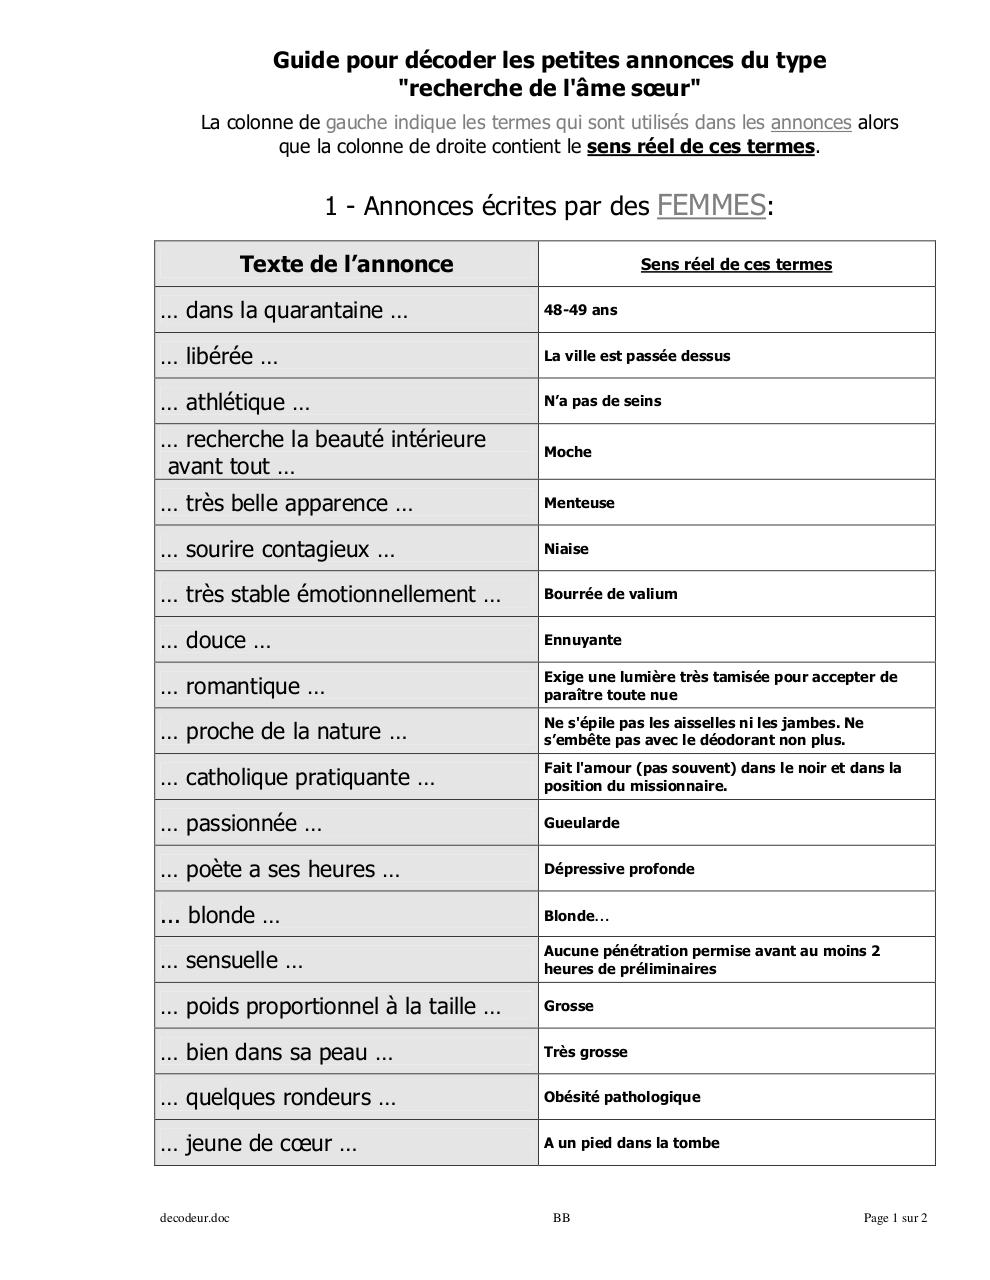 Le betisier des sites de rencontres pdf